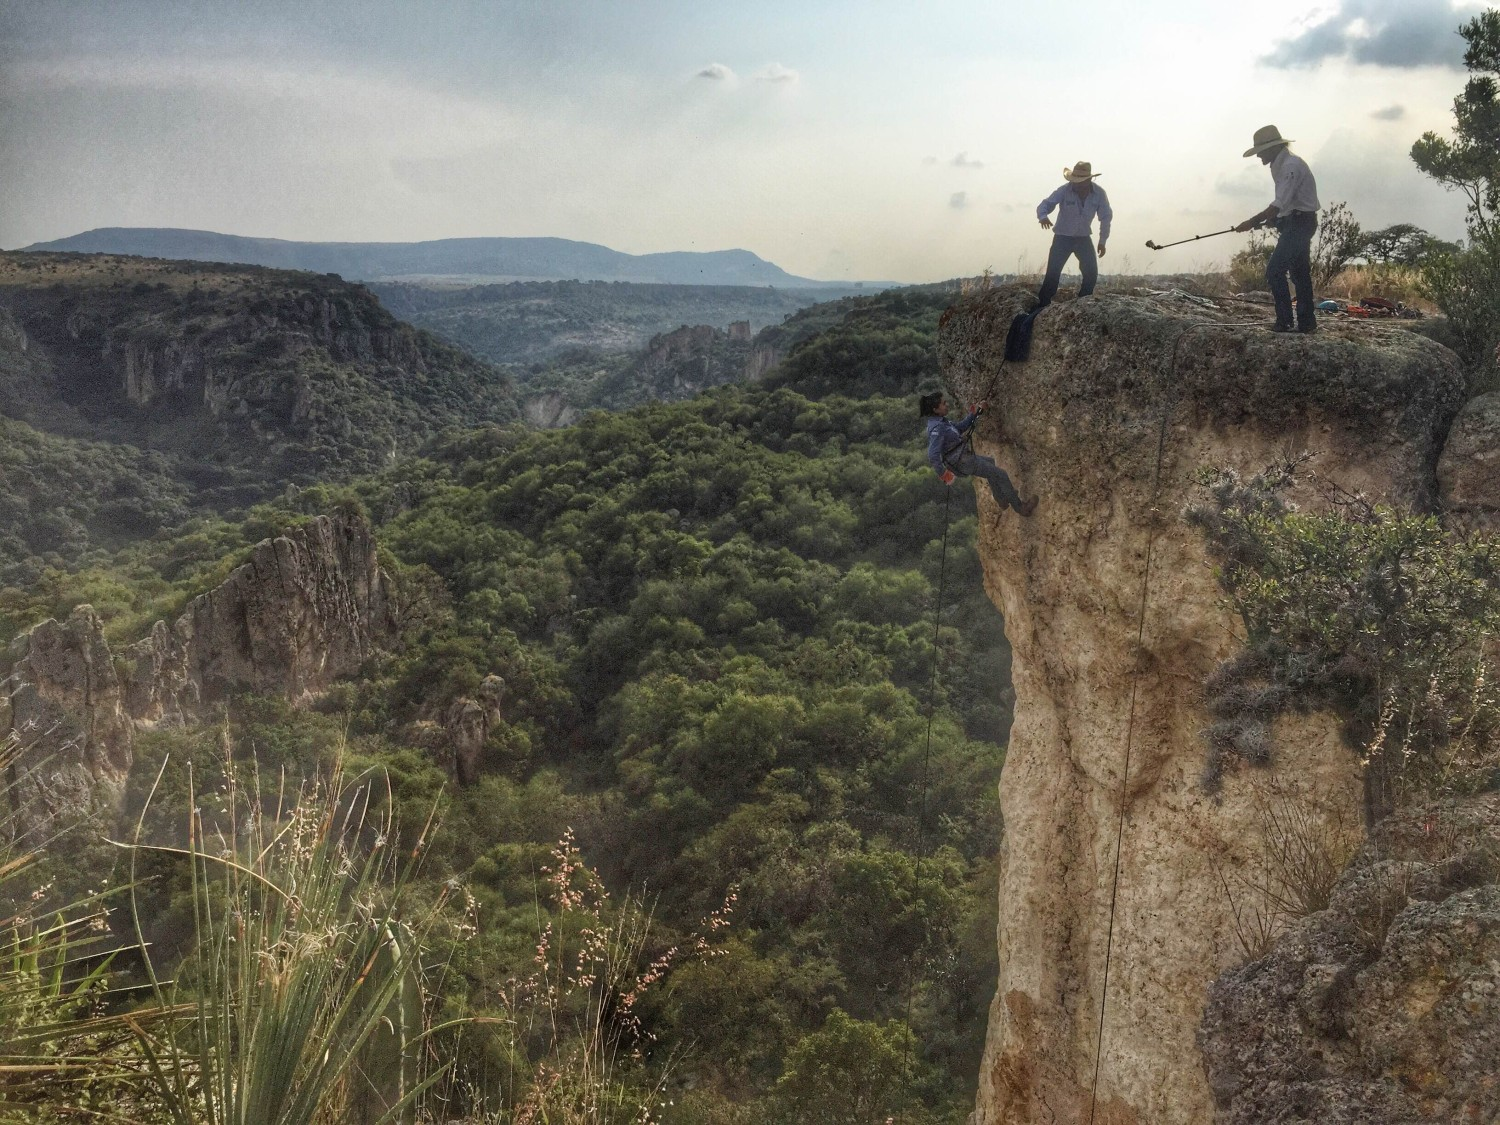 Repelling in San Miguel